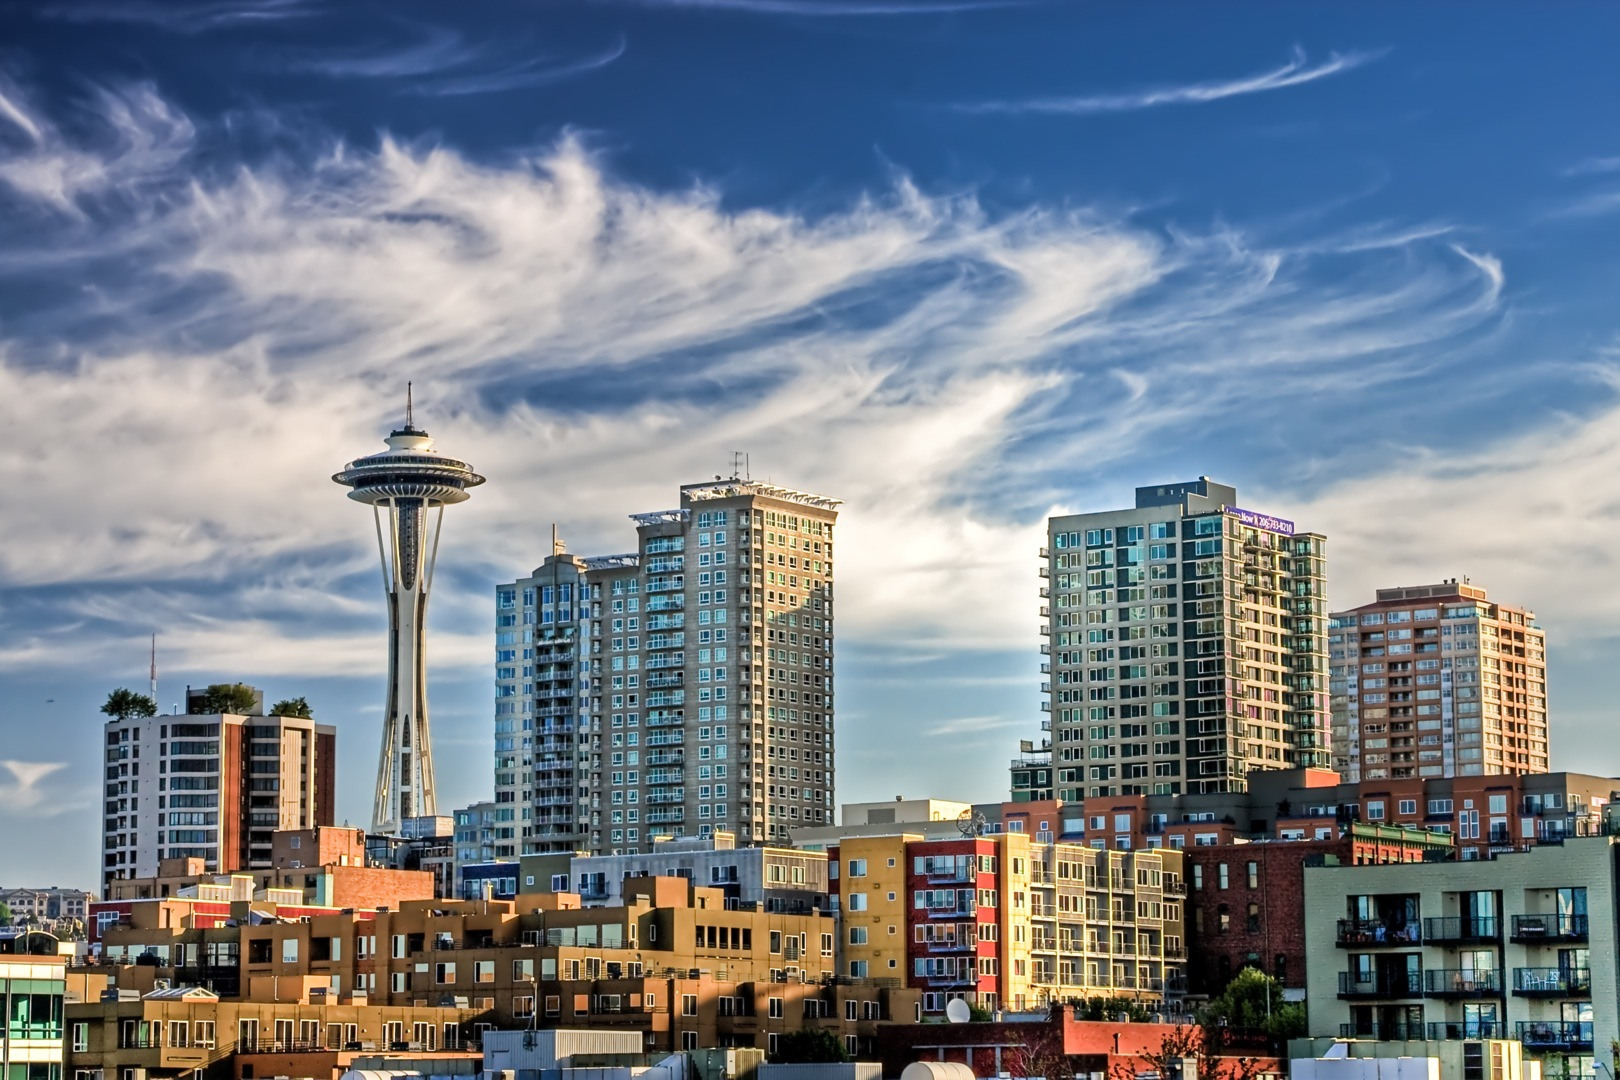 Seattle Skyline with Space Needle and Clouds